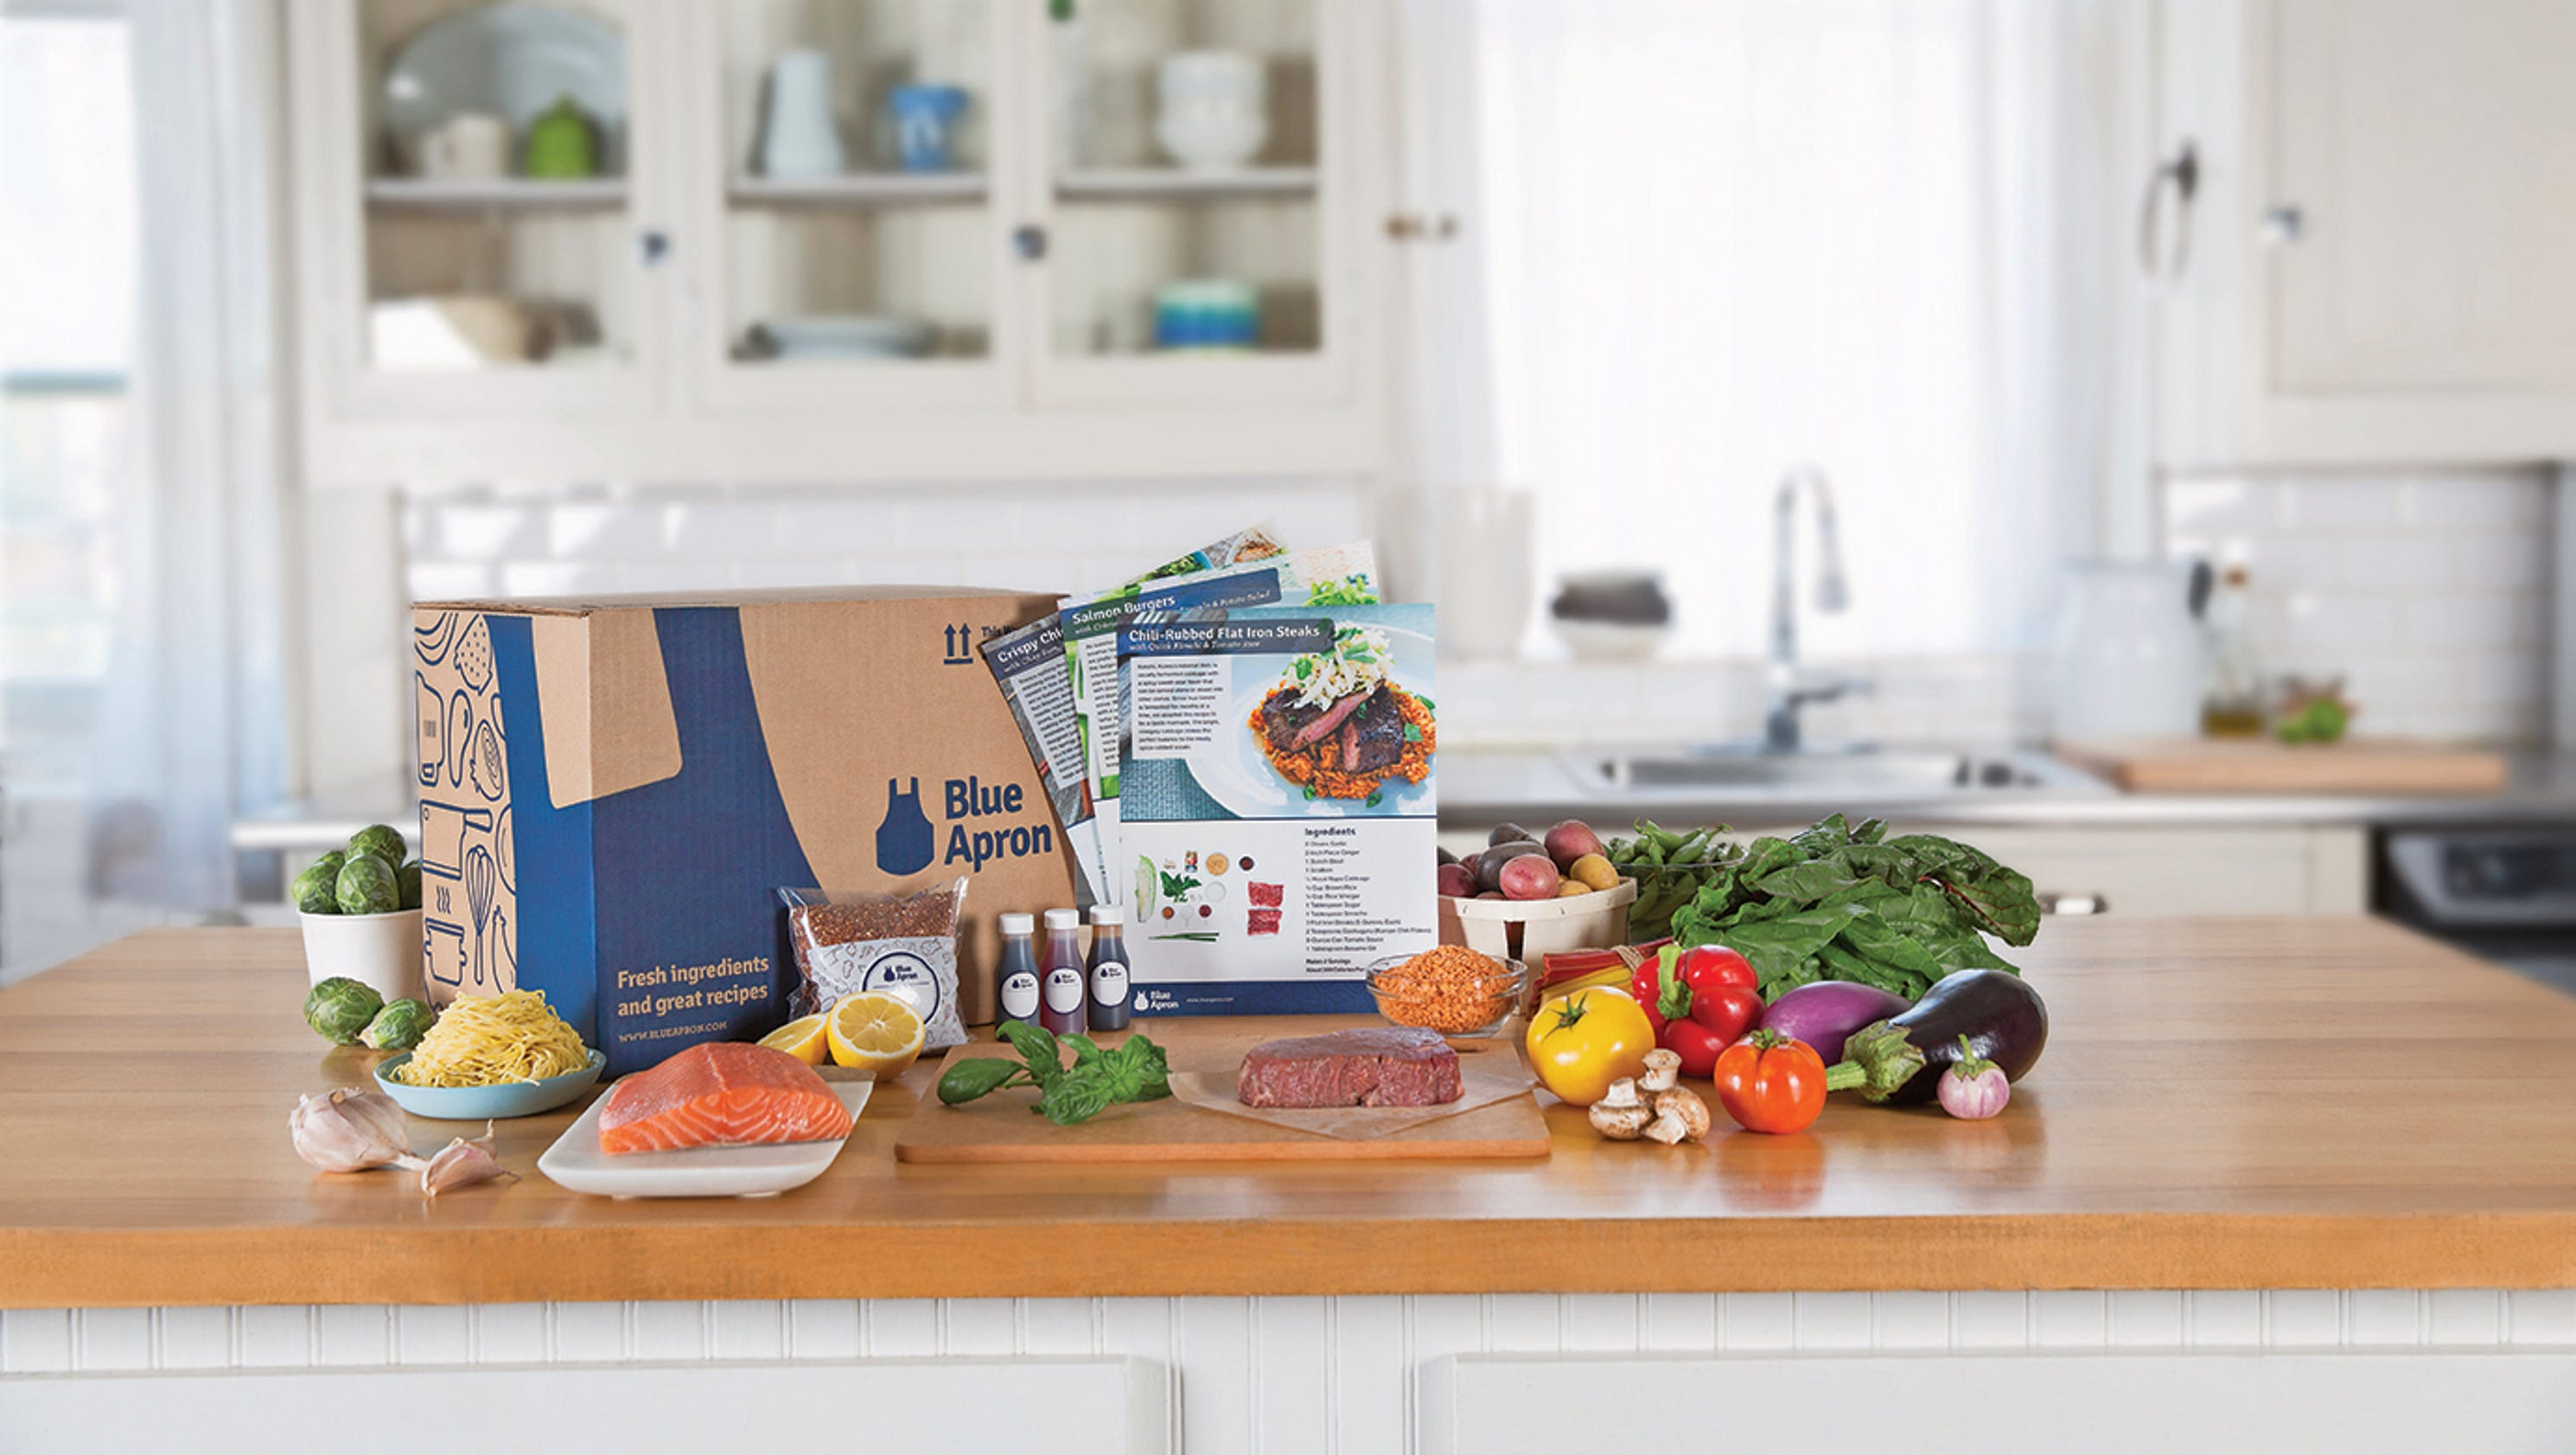 Blue apron prices ipo at 15 17 per share to raise 500m biocorpaavc Gallery